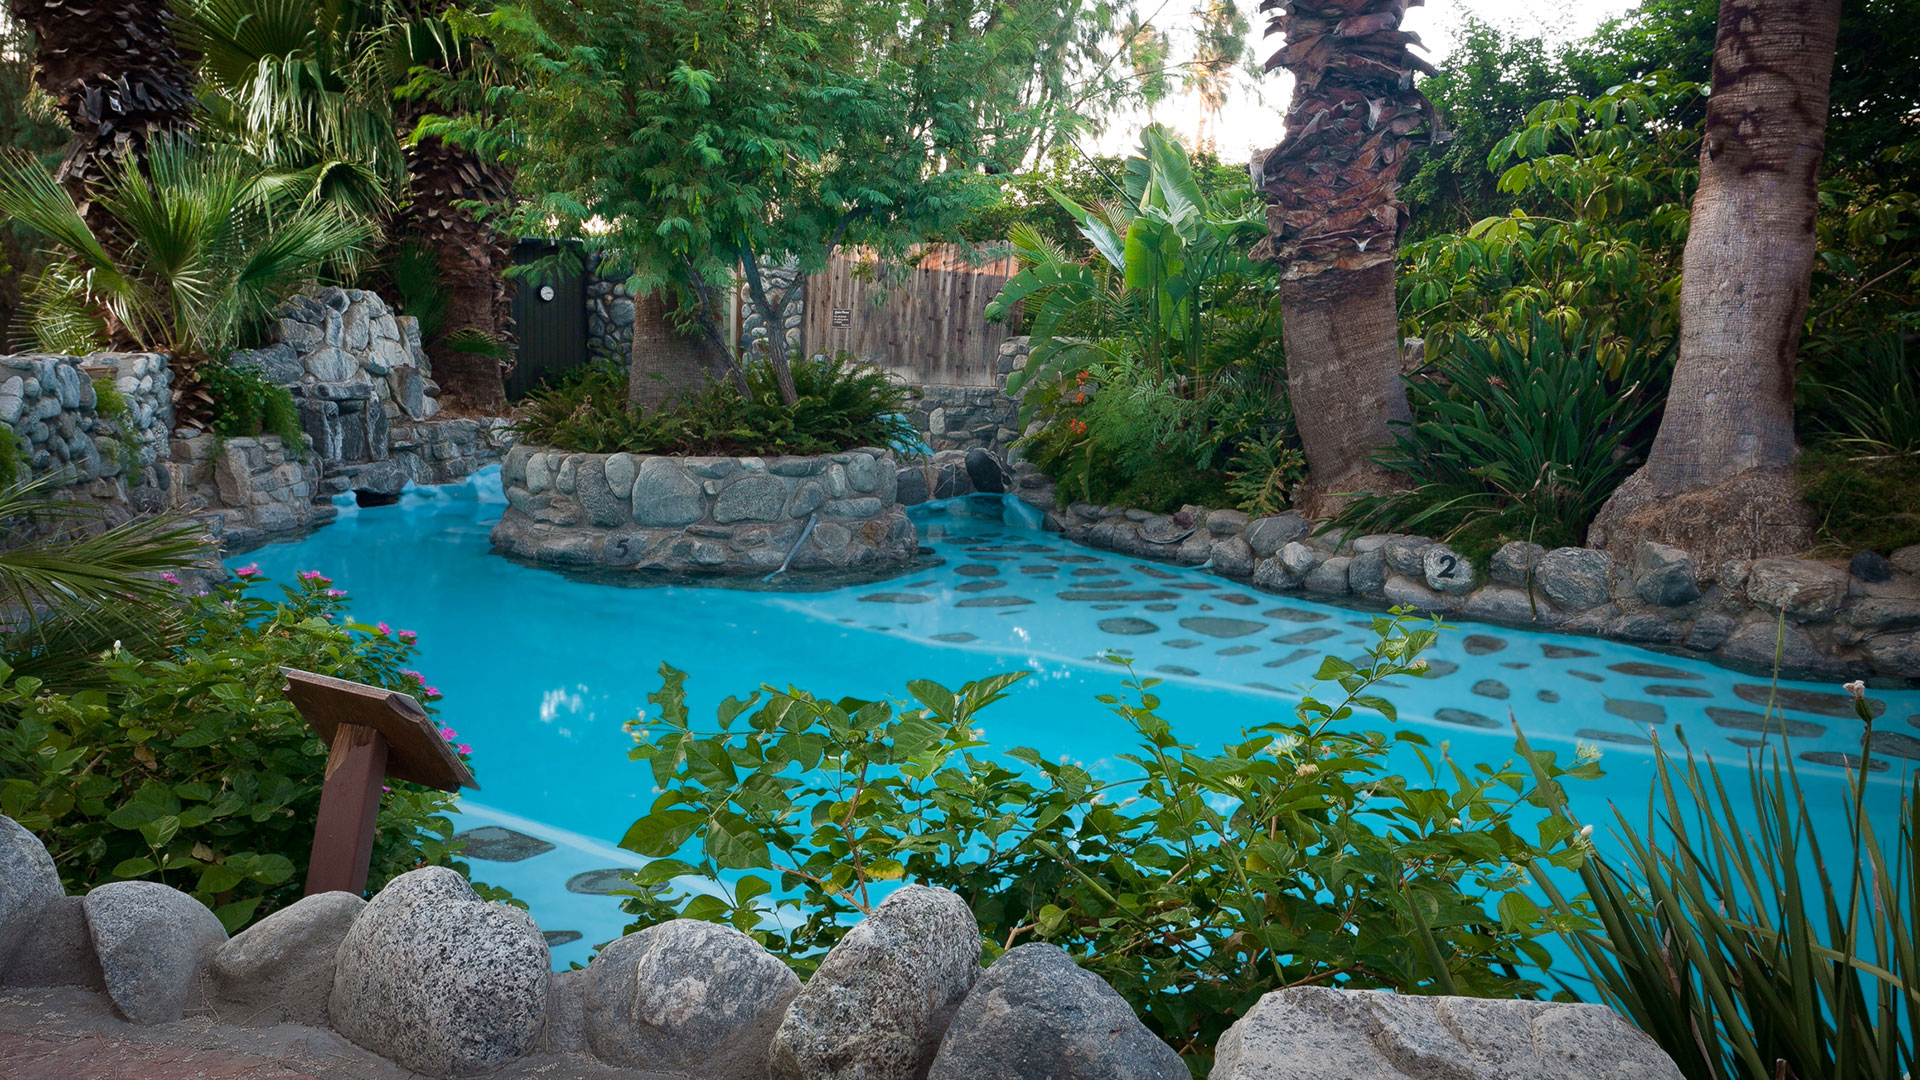 The Grotto hot springs pool at Two Bunch Palms in Desert Hot Springs